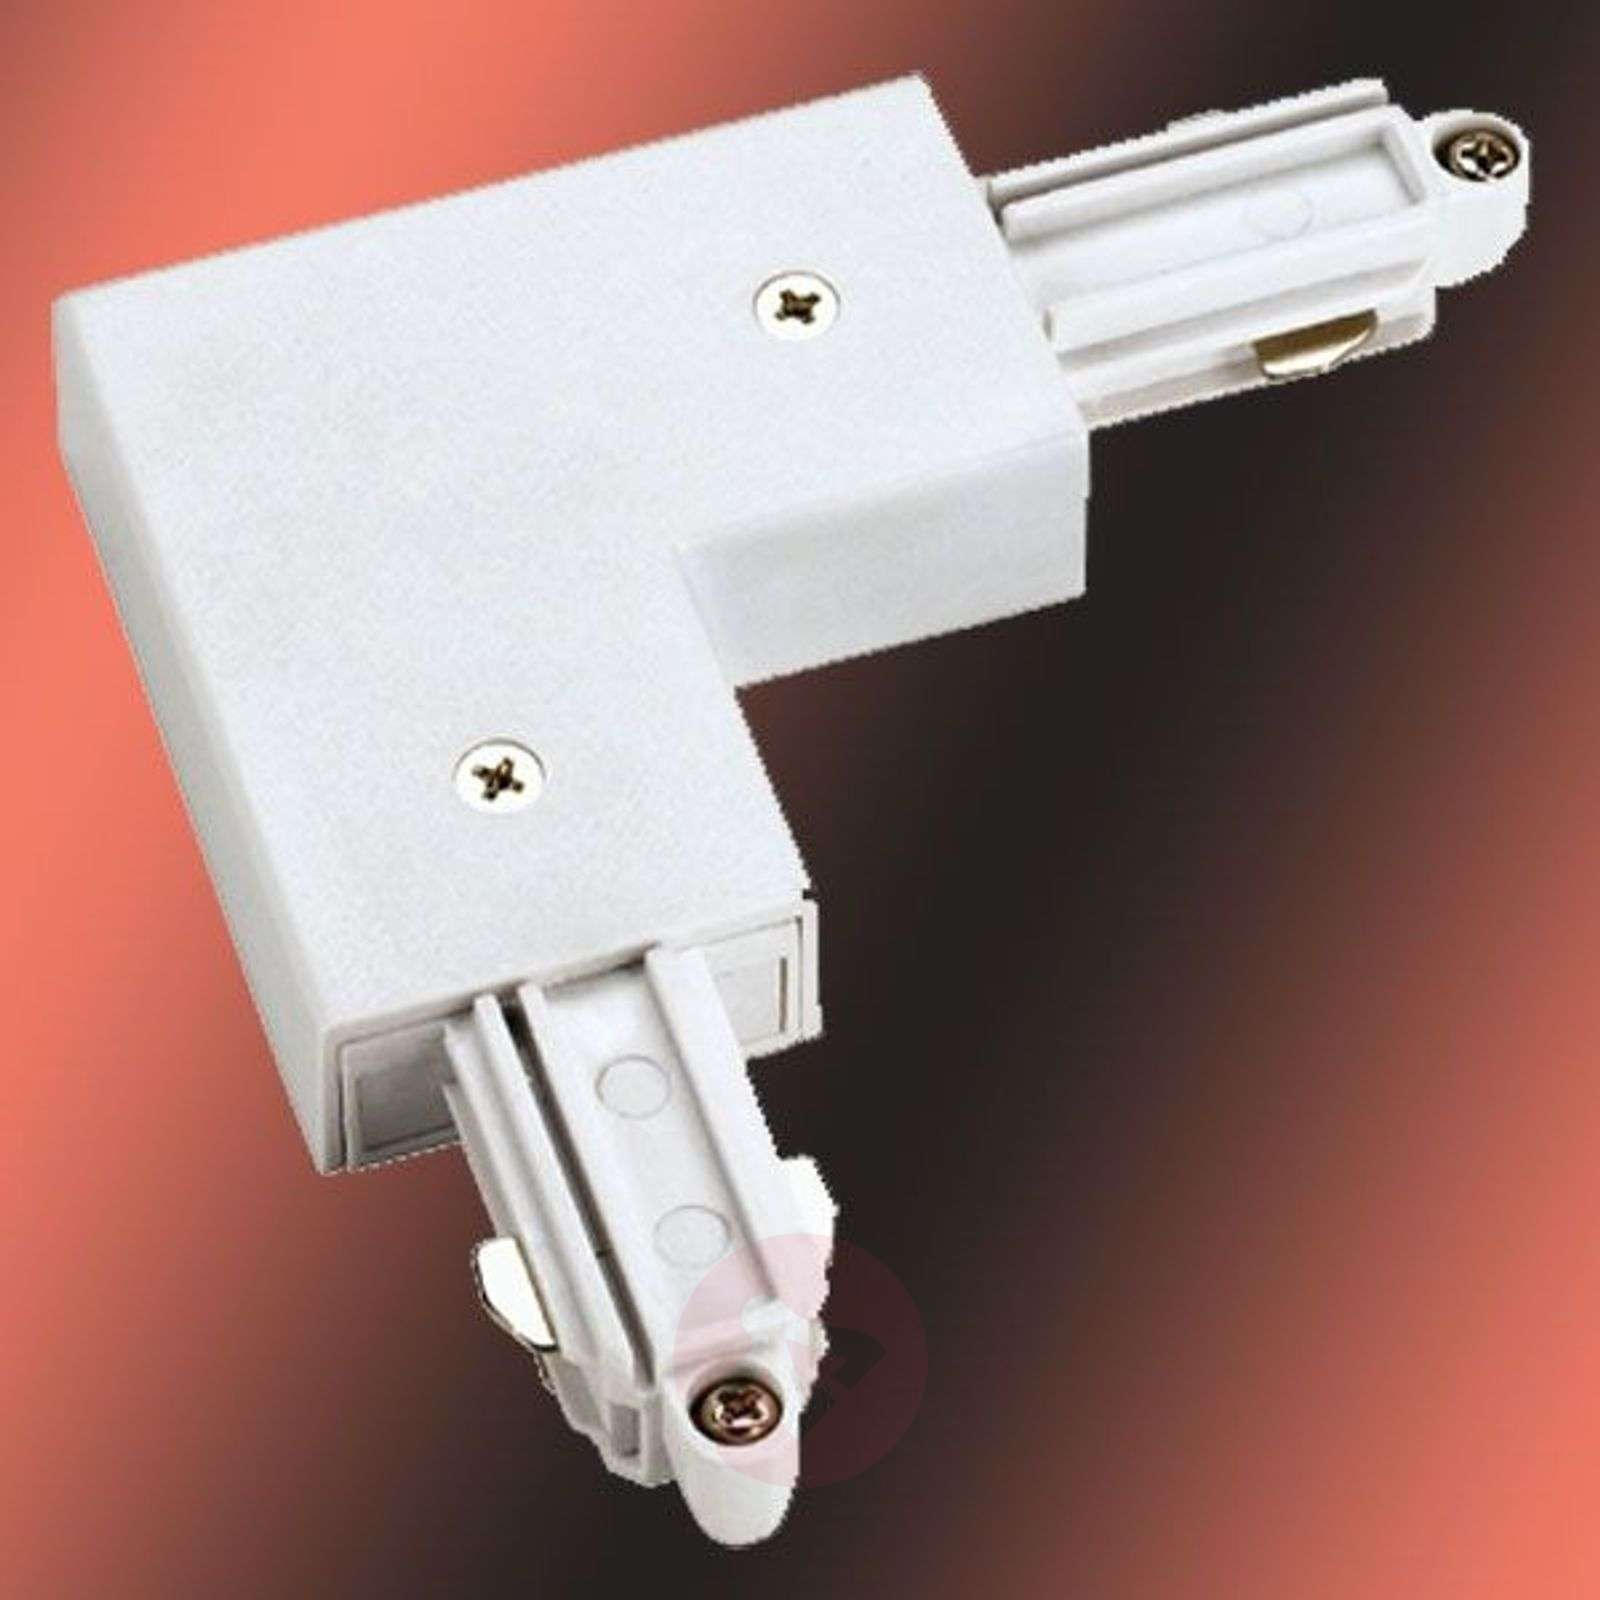 Connecteur dangle pour rail monophasé HT-5502430X-01